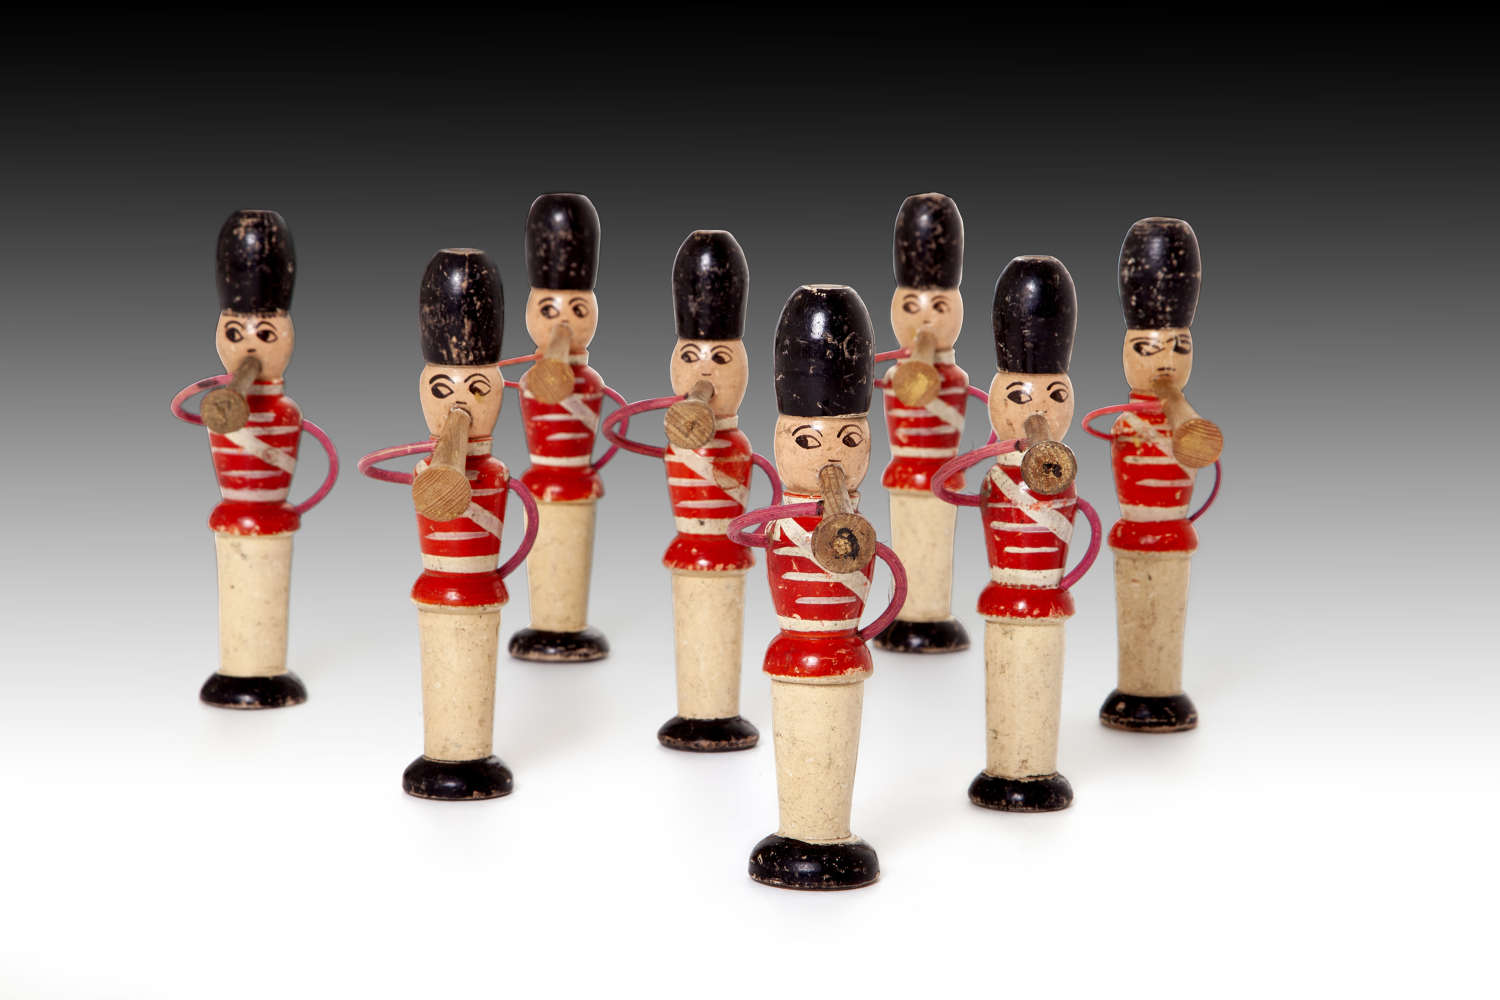 Musical toy soldiers